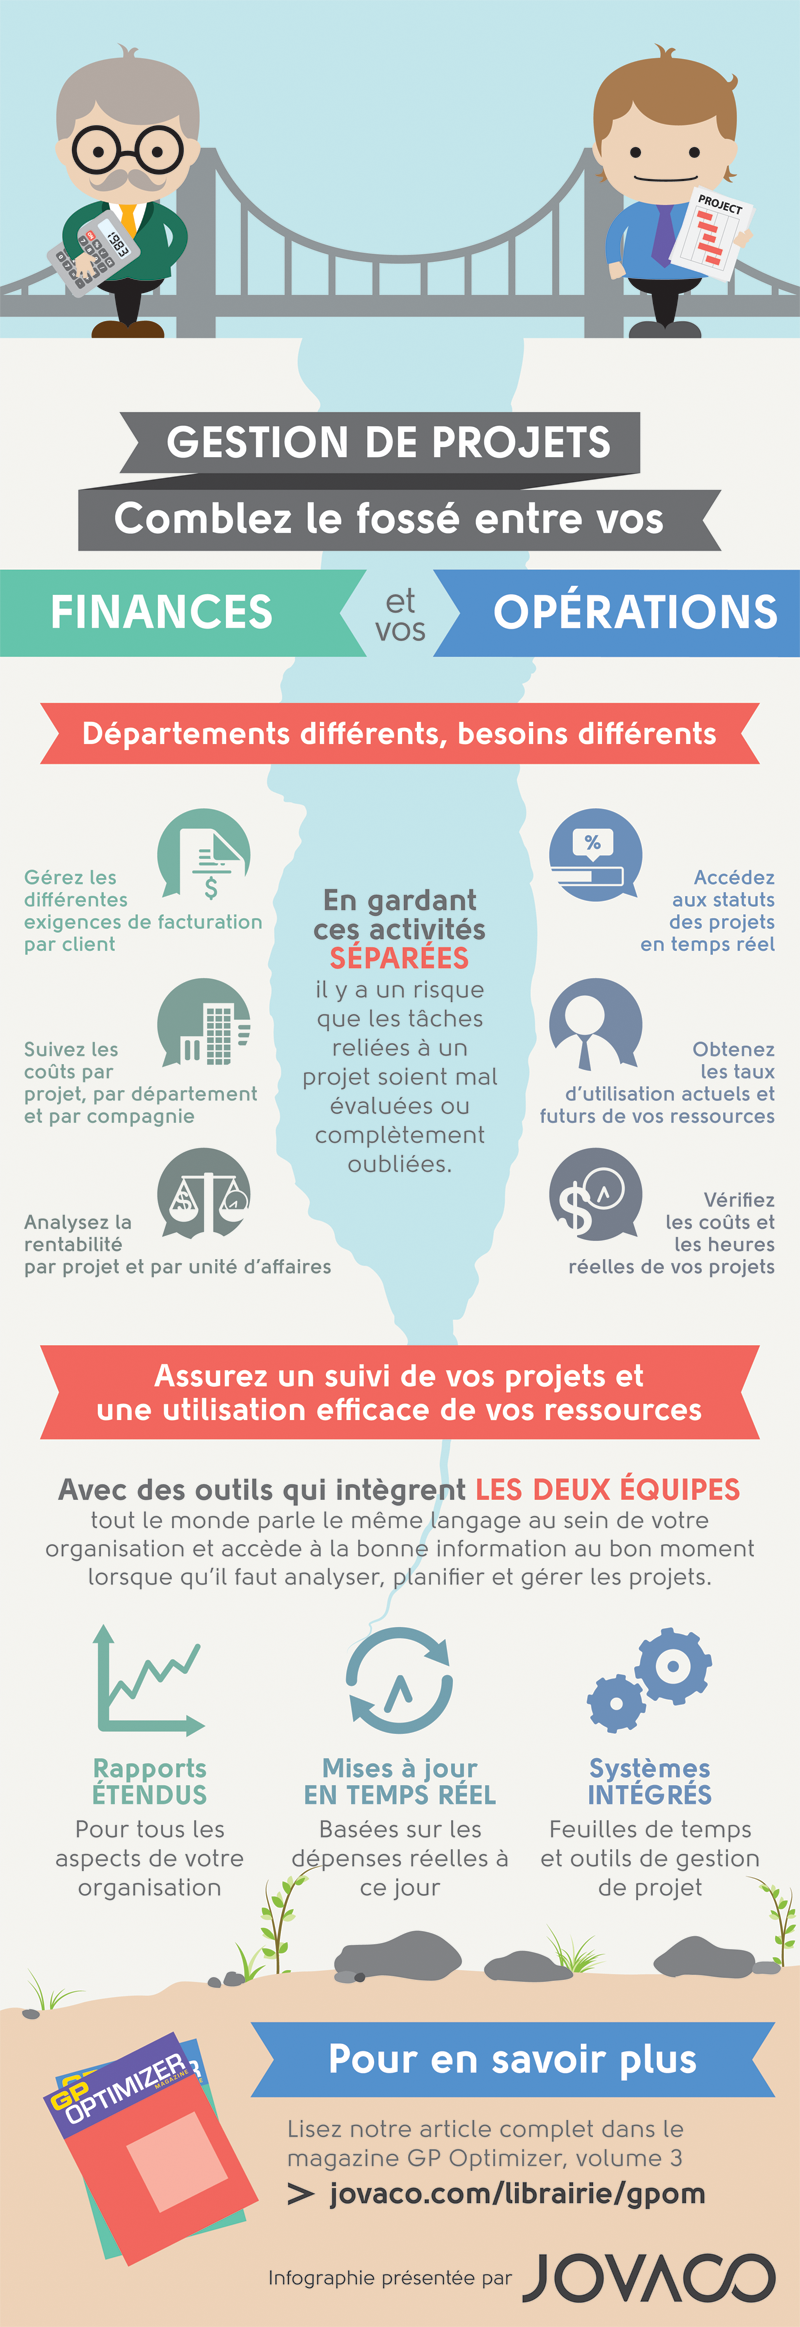 jovaco-solutions-infographie-gestion-project-comblez-fosse-finances-operations